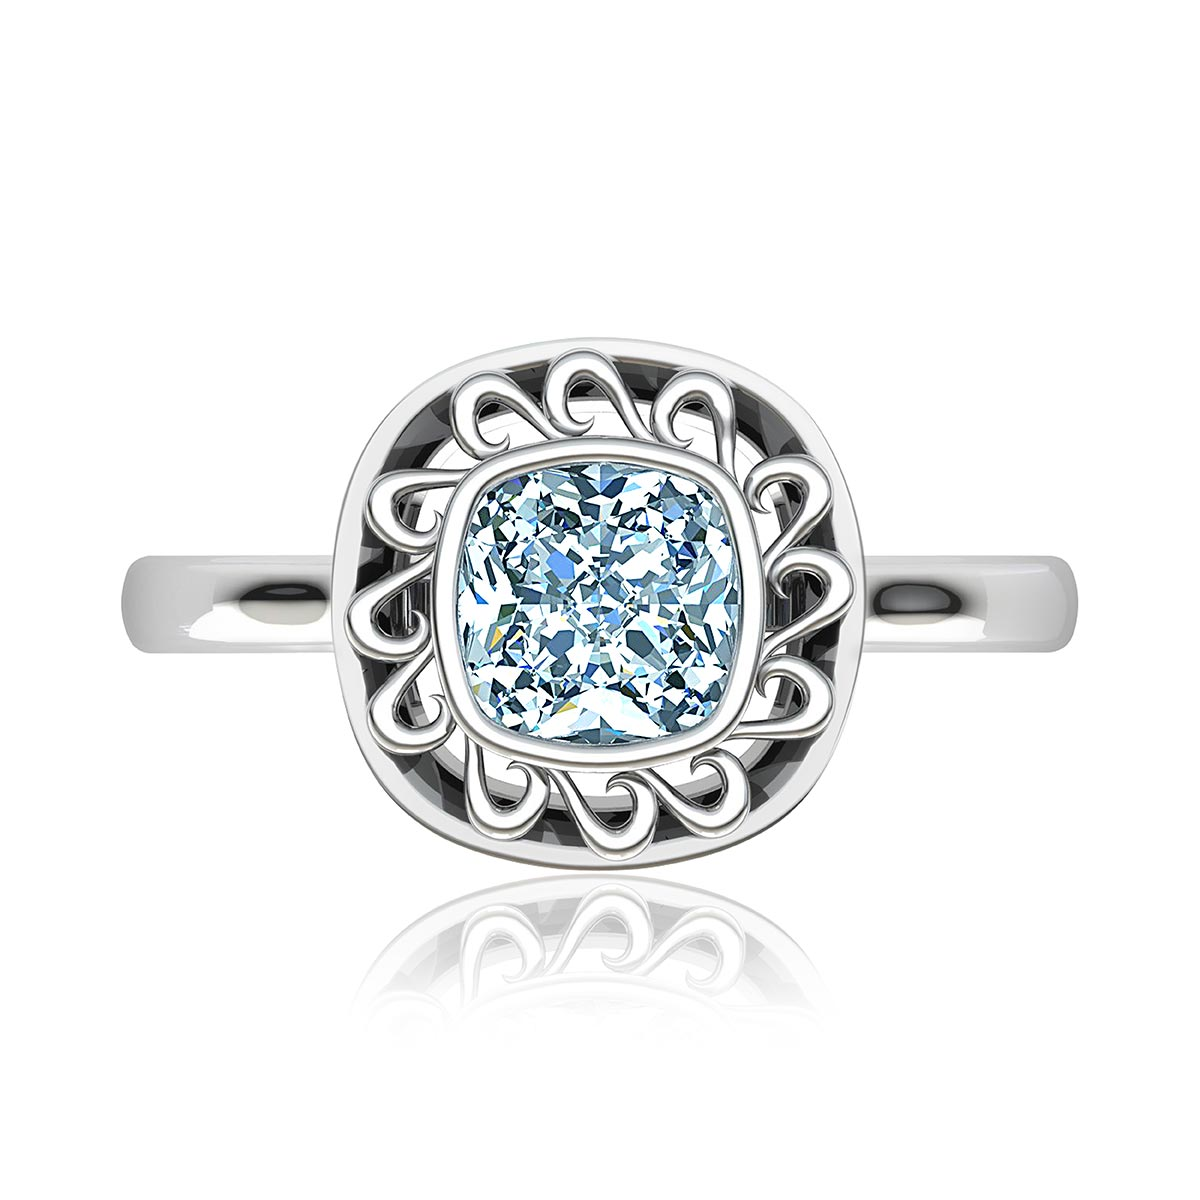 Asterion Moissanite Ring